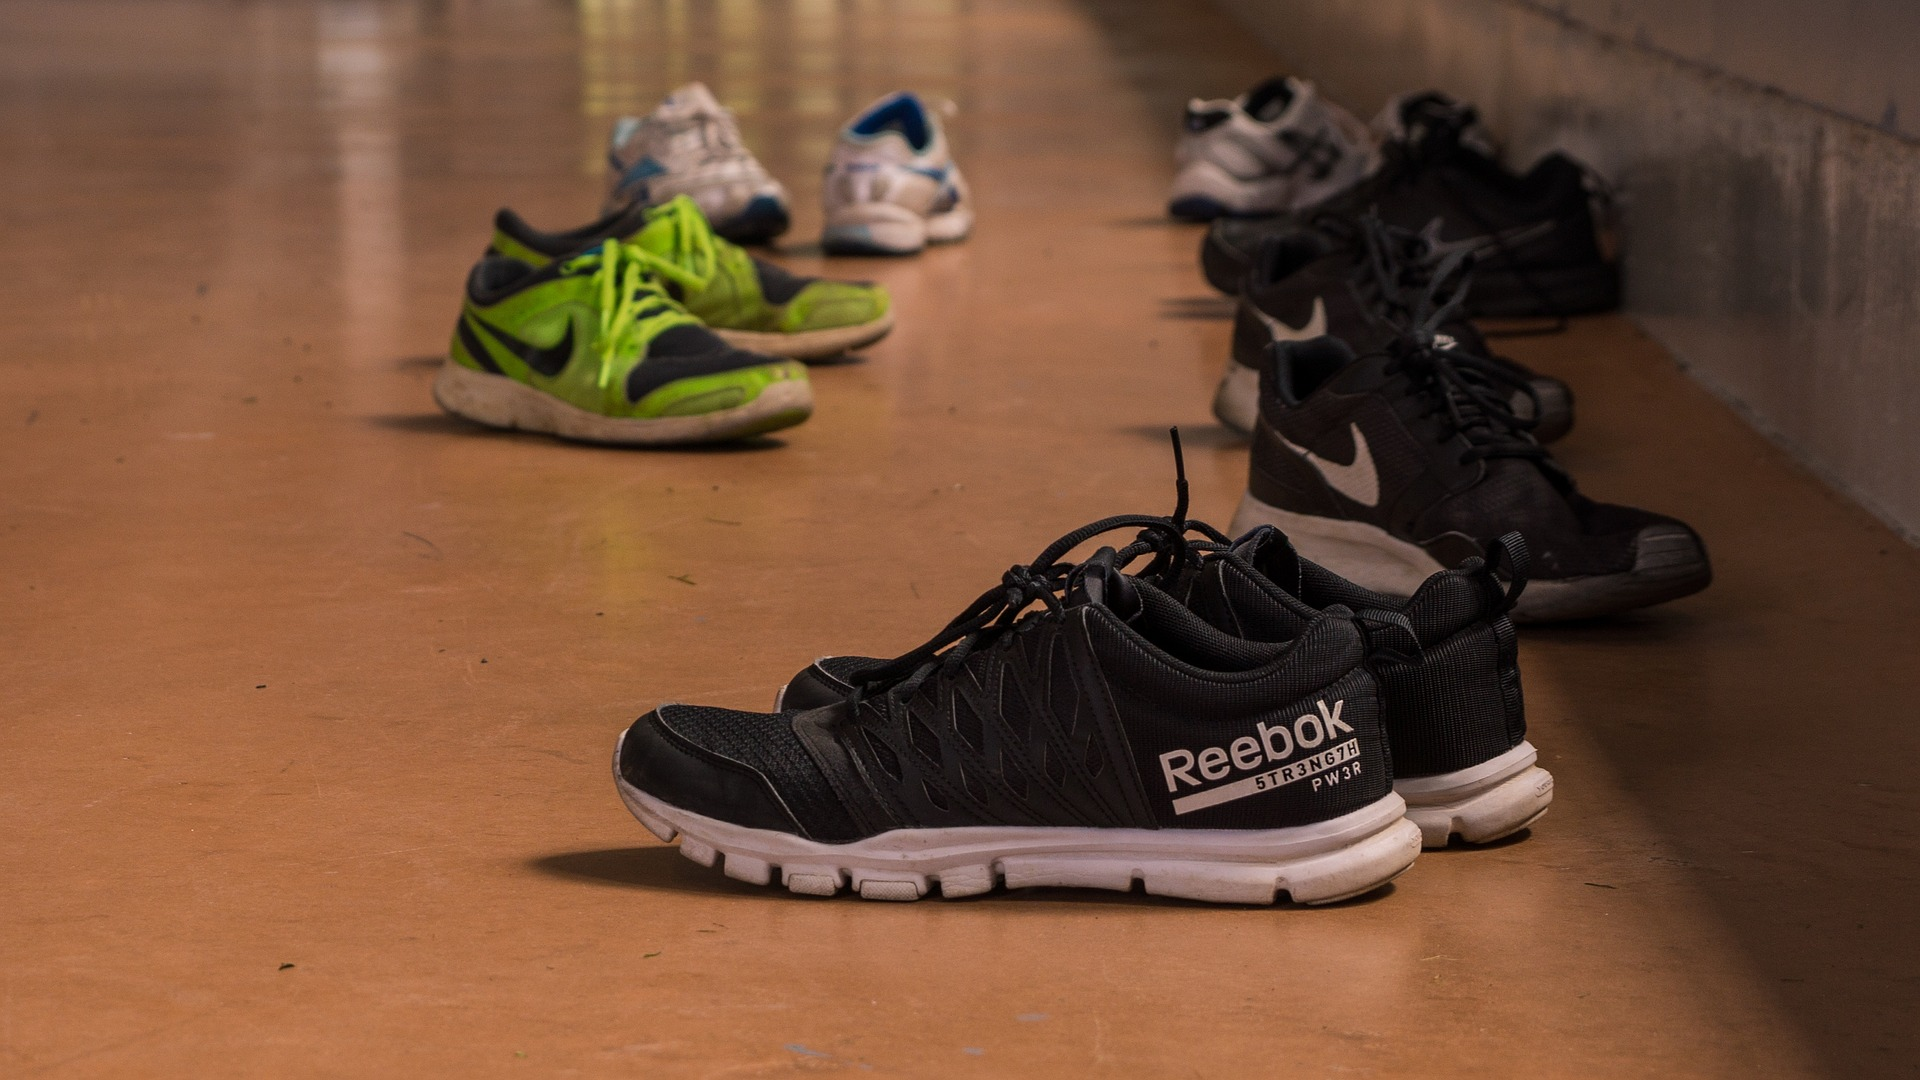 What is the importance of wearing sneakers in gym?